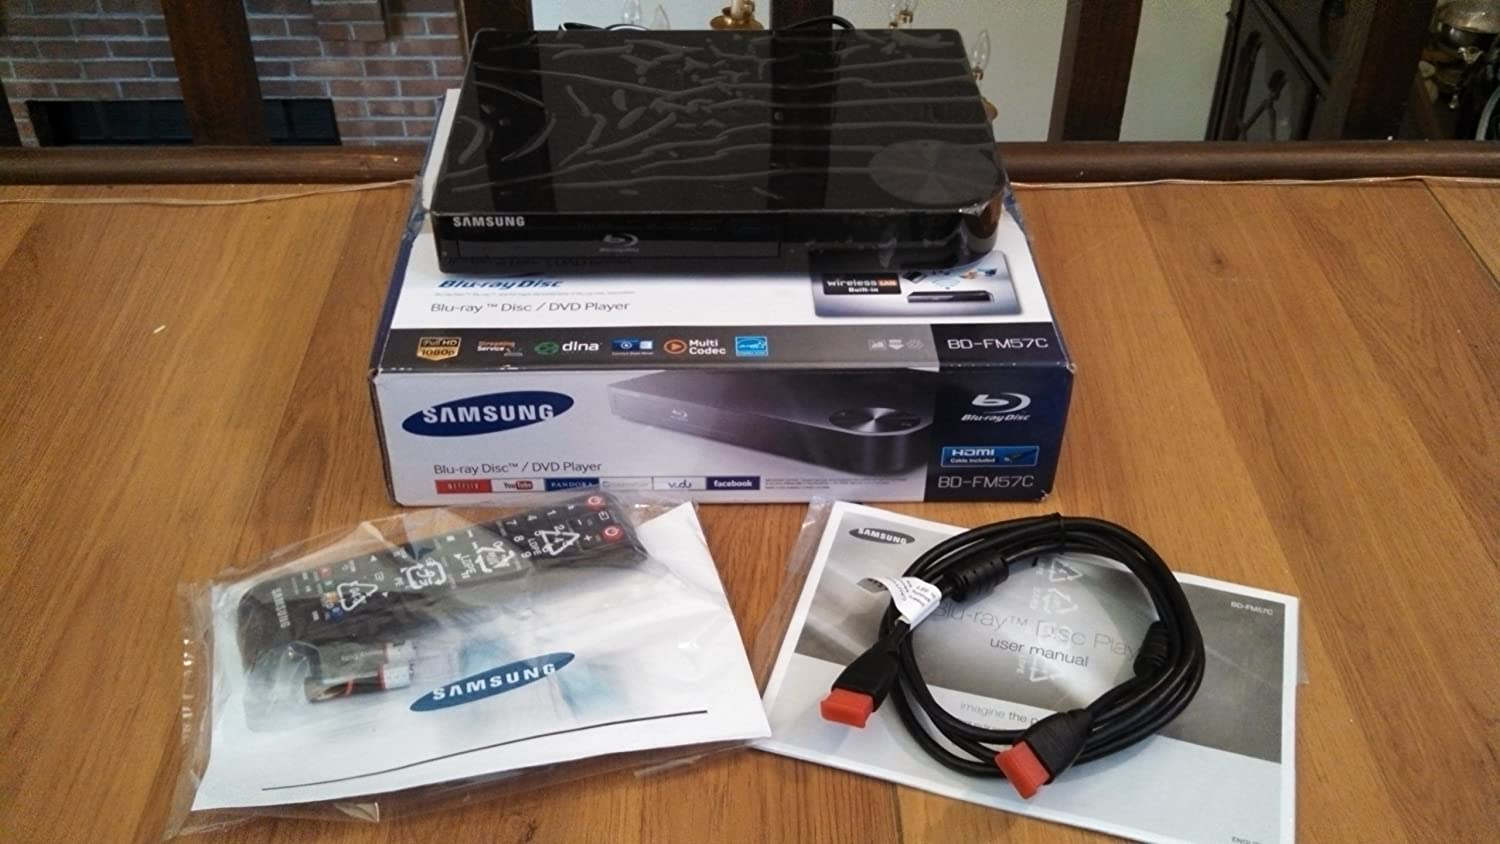 Samsung BD-FM57C Blu-Ray Player with Wi-Fi Streaming and HDMI Cable